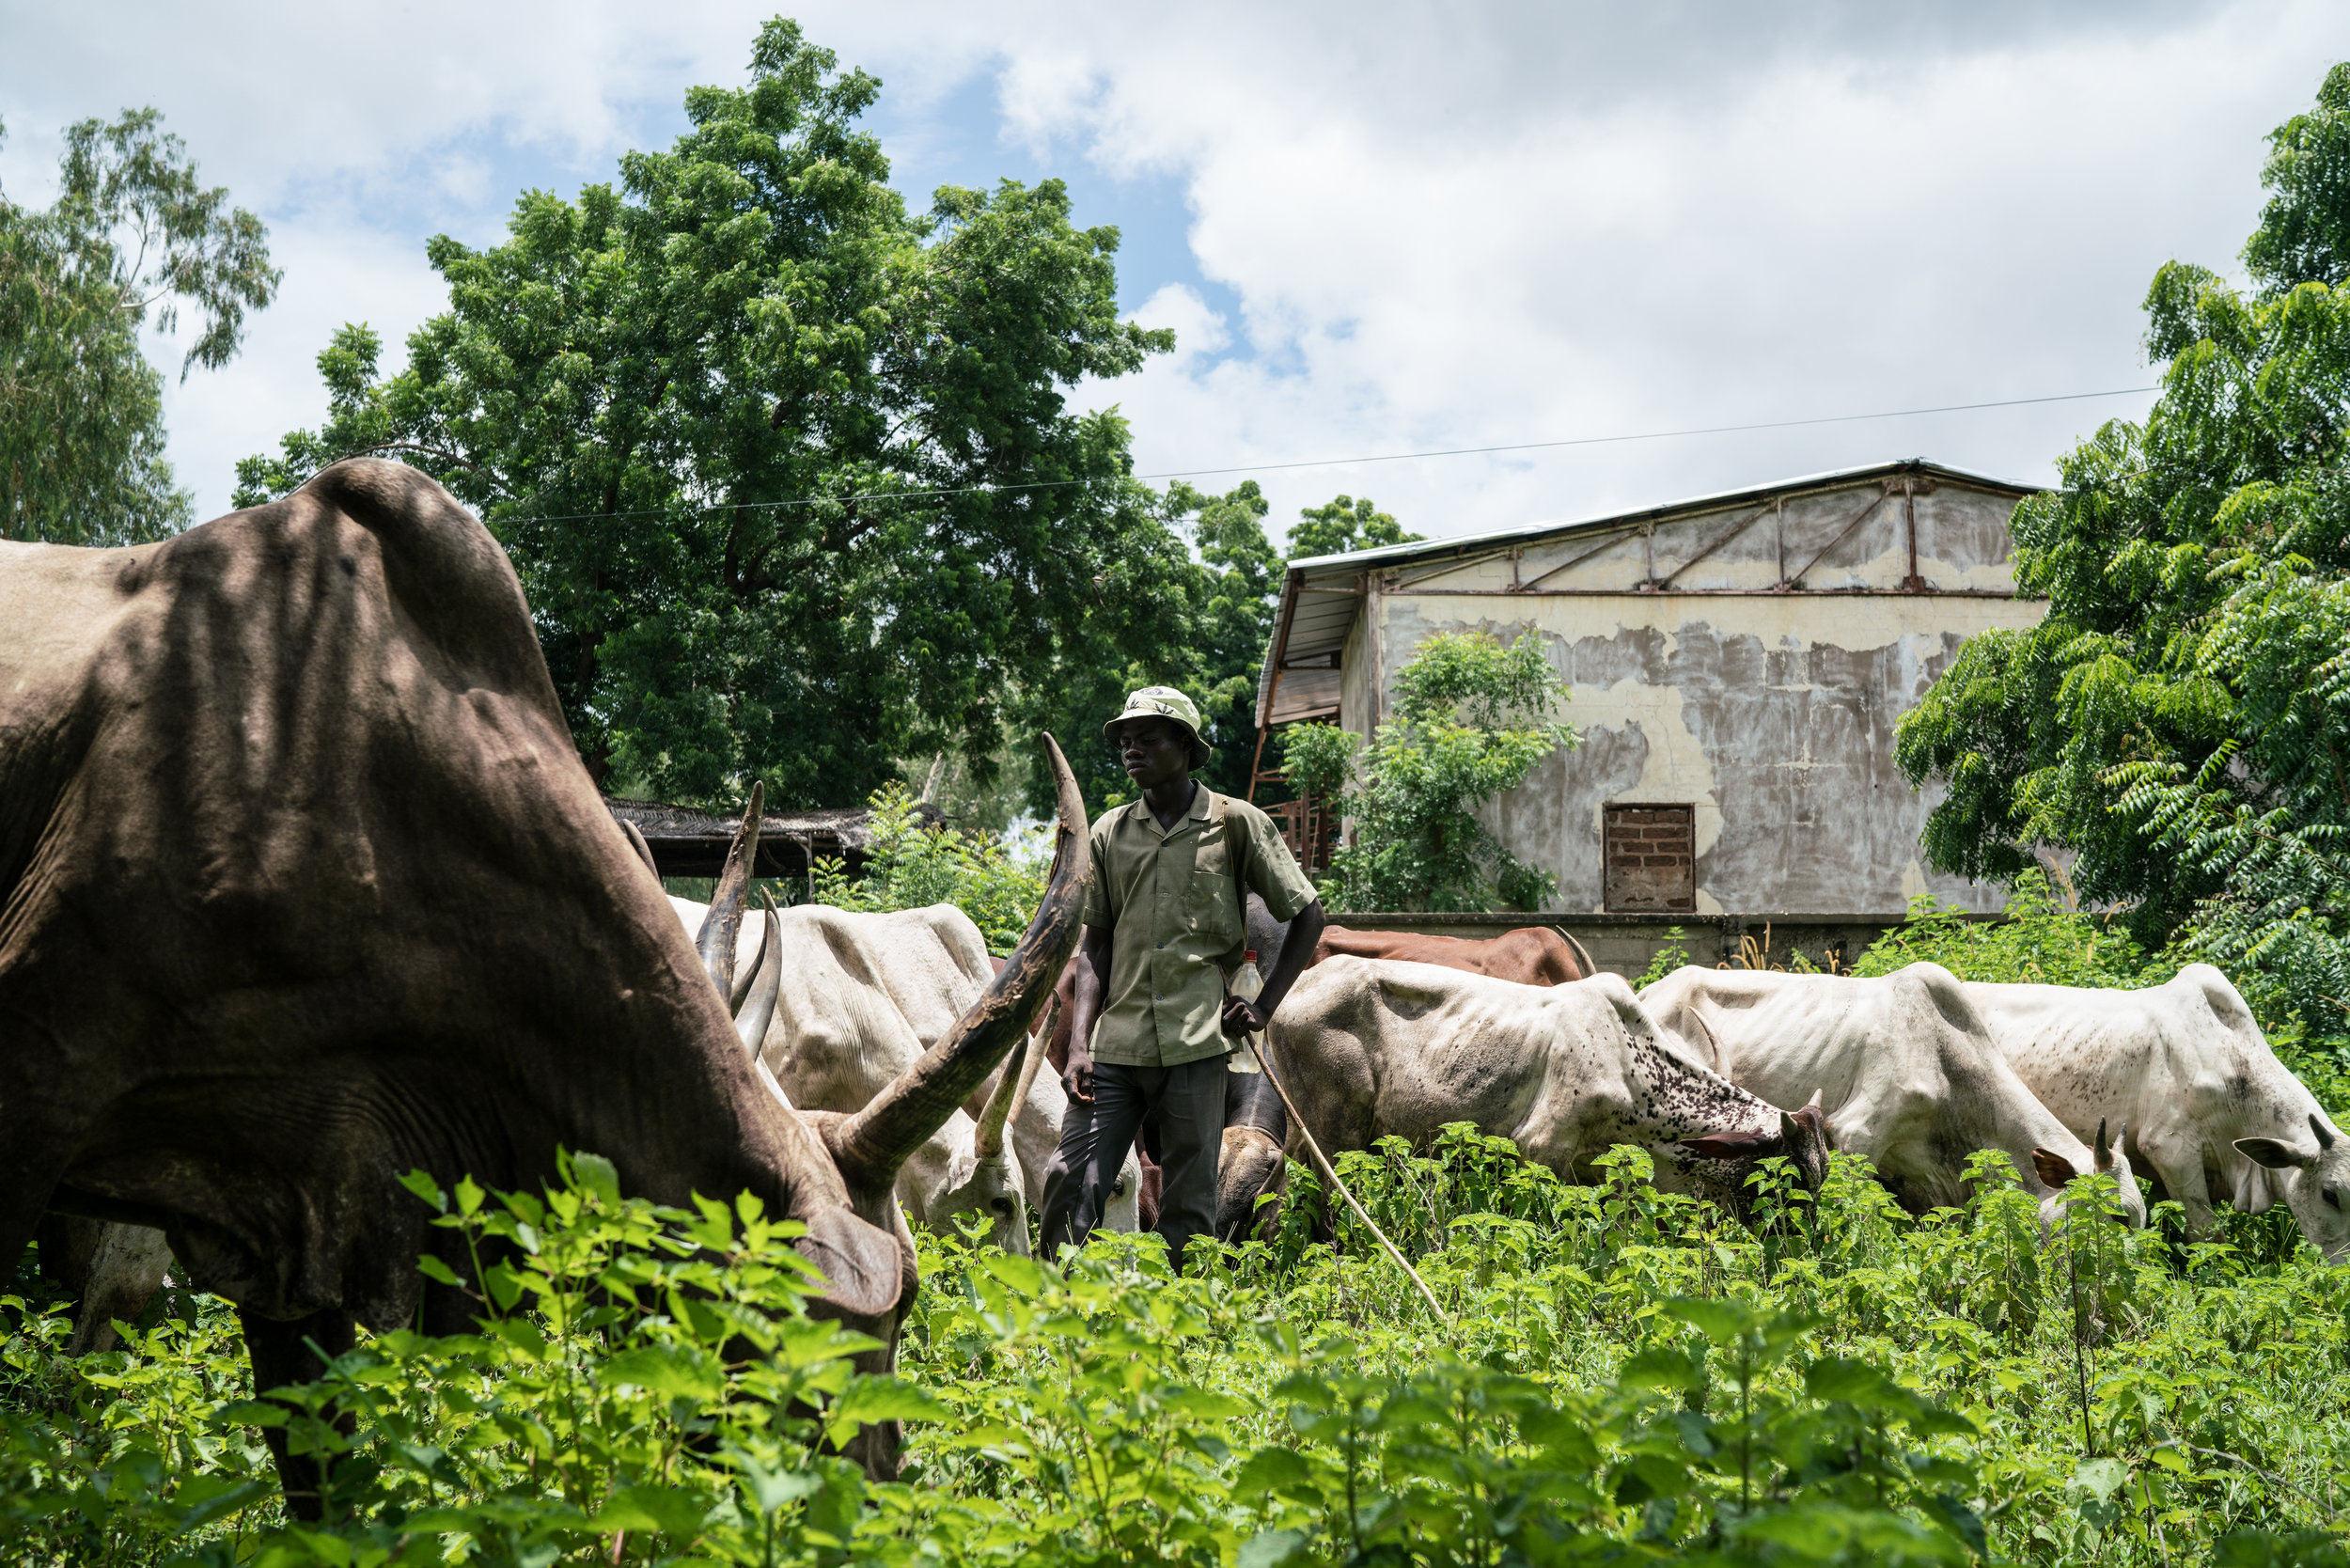 A young herder tends to his cattle as they graze through Garoua, Cameroon. Many herders and farmers have taken to giving tramadol to their livestock in order to help them work harder and walk longer in the country's intense heat.